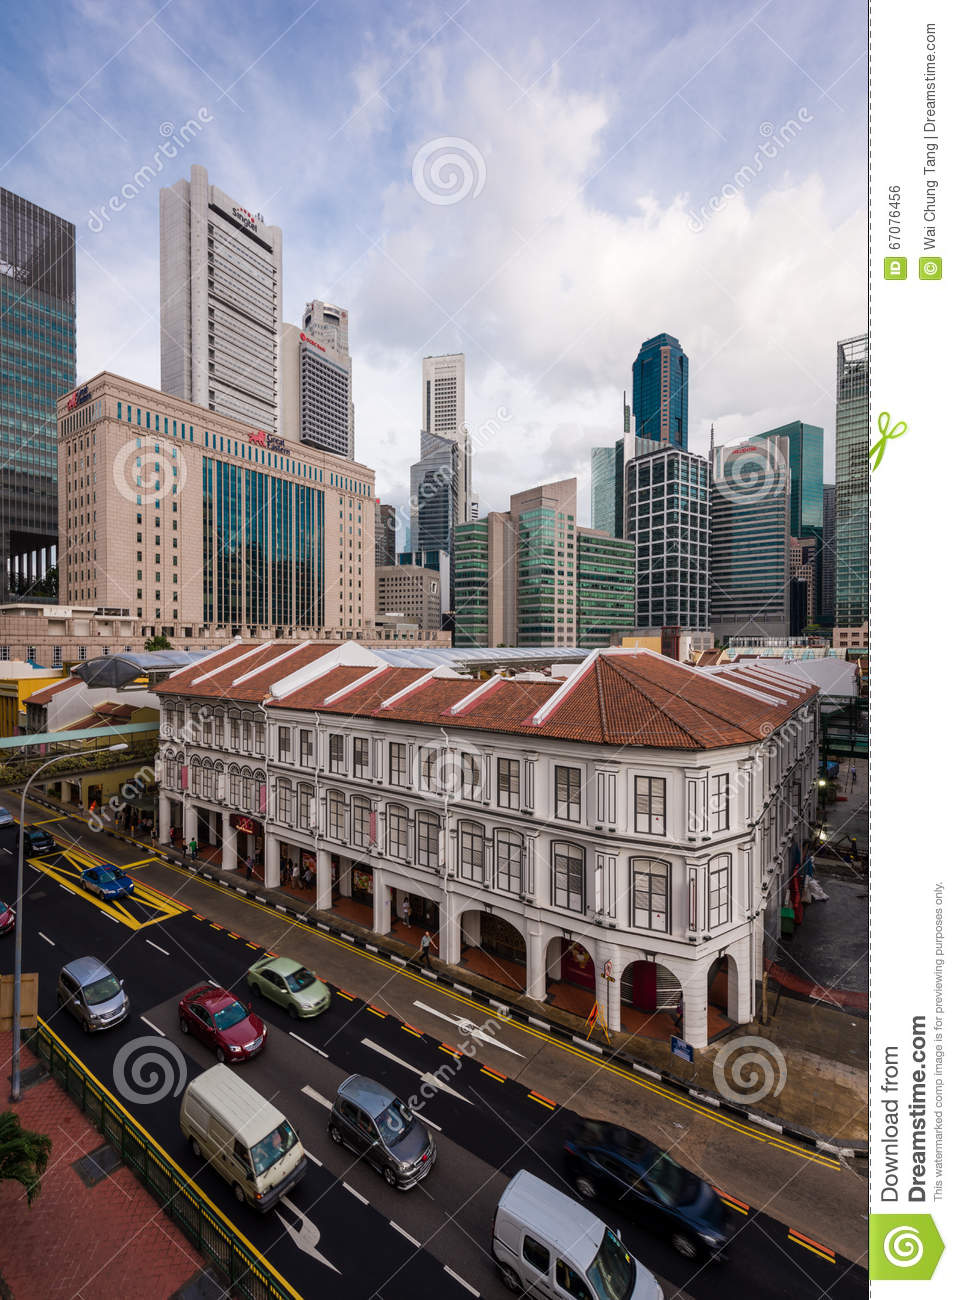 Historical Buildings And Skyscrapers Along A Busy Street In Singapore